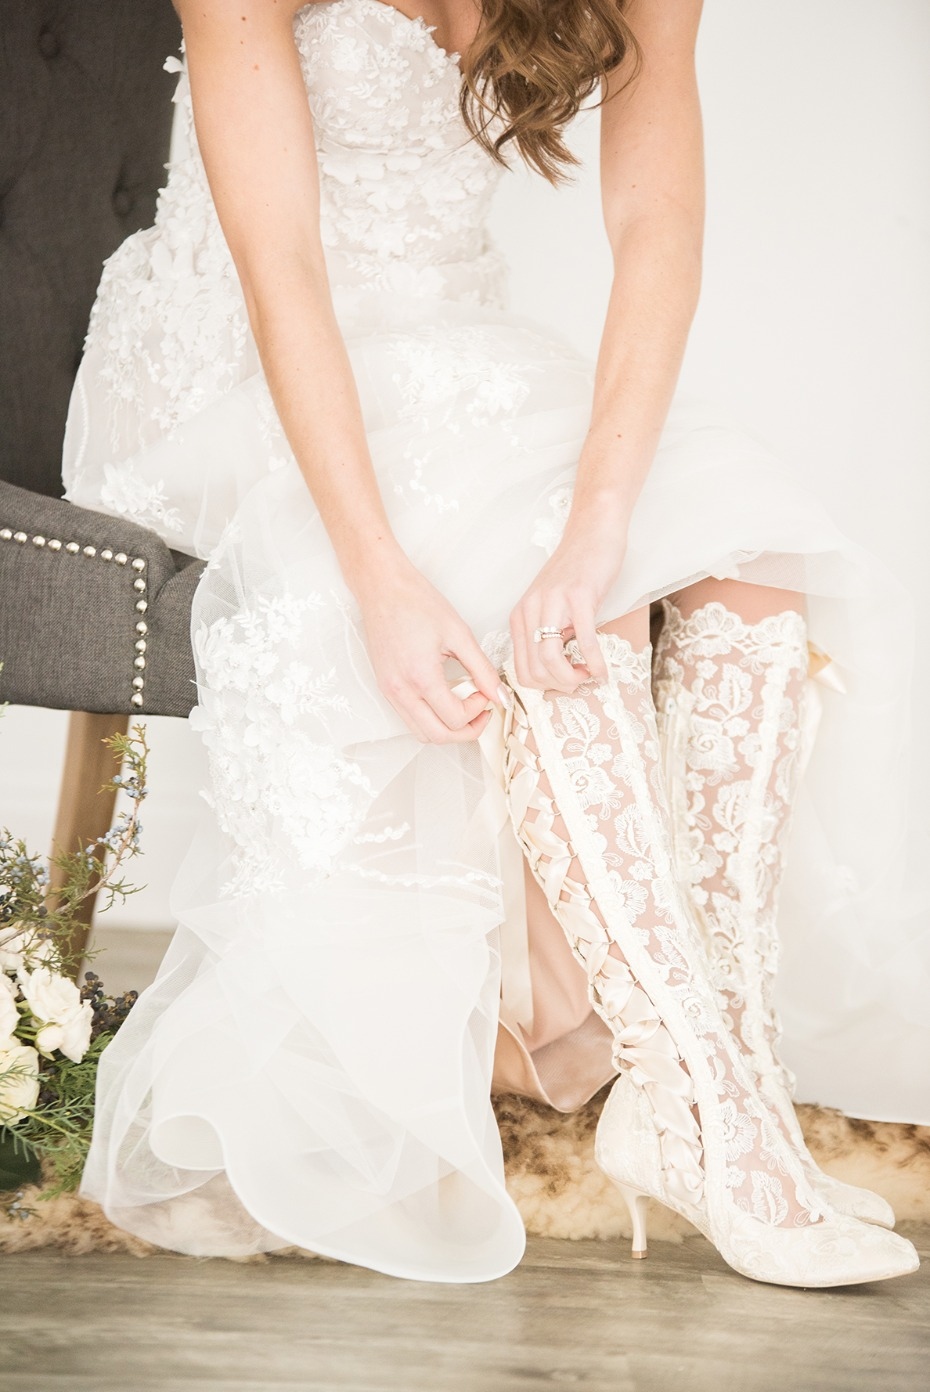 lace wedding boots that we are so in love with